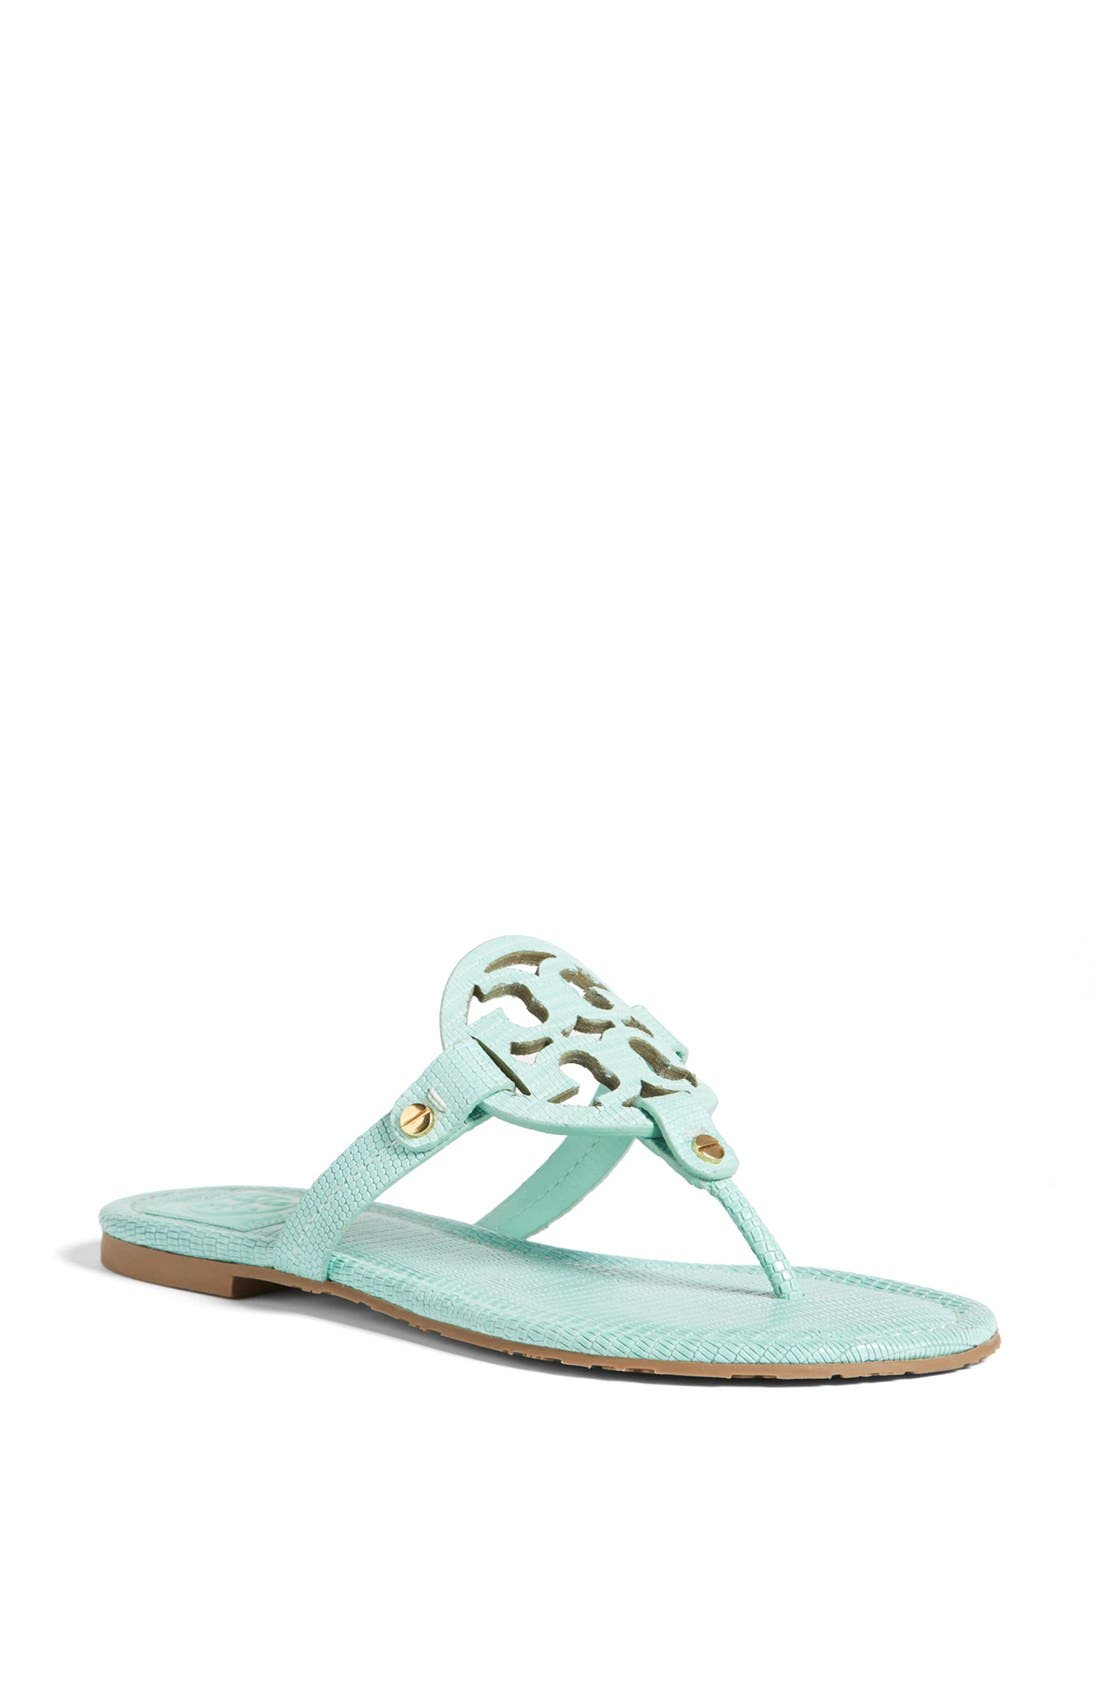 Main Image - Tory Burch 'Miller' Sandal (Nordstrom Exclusive Color)